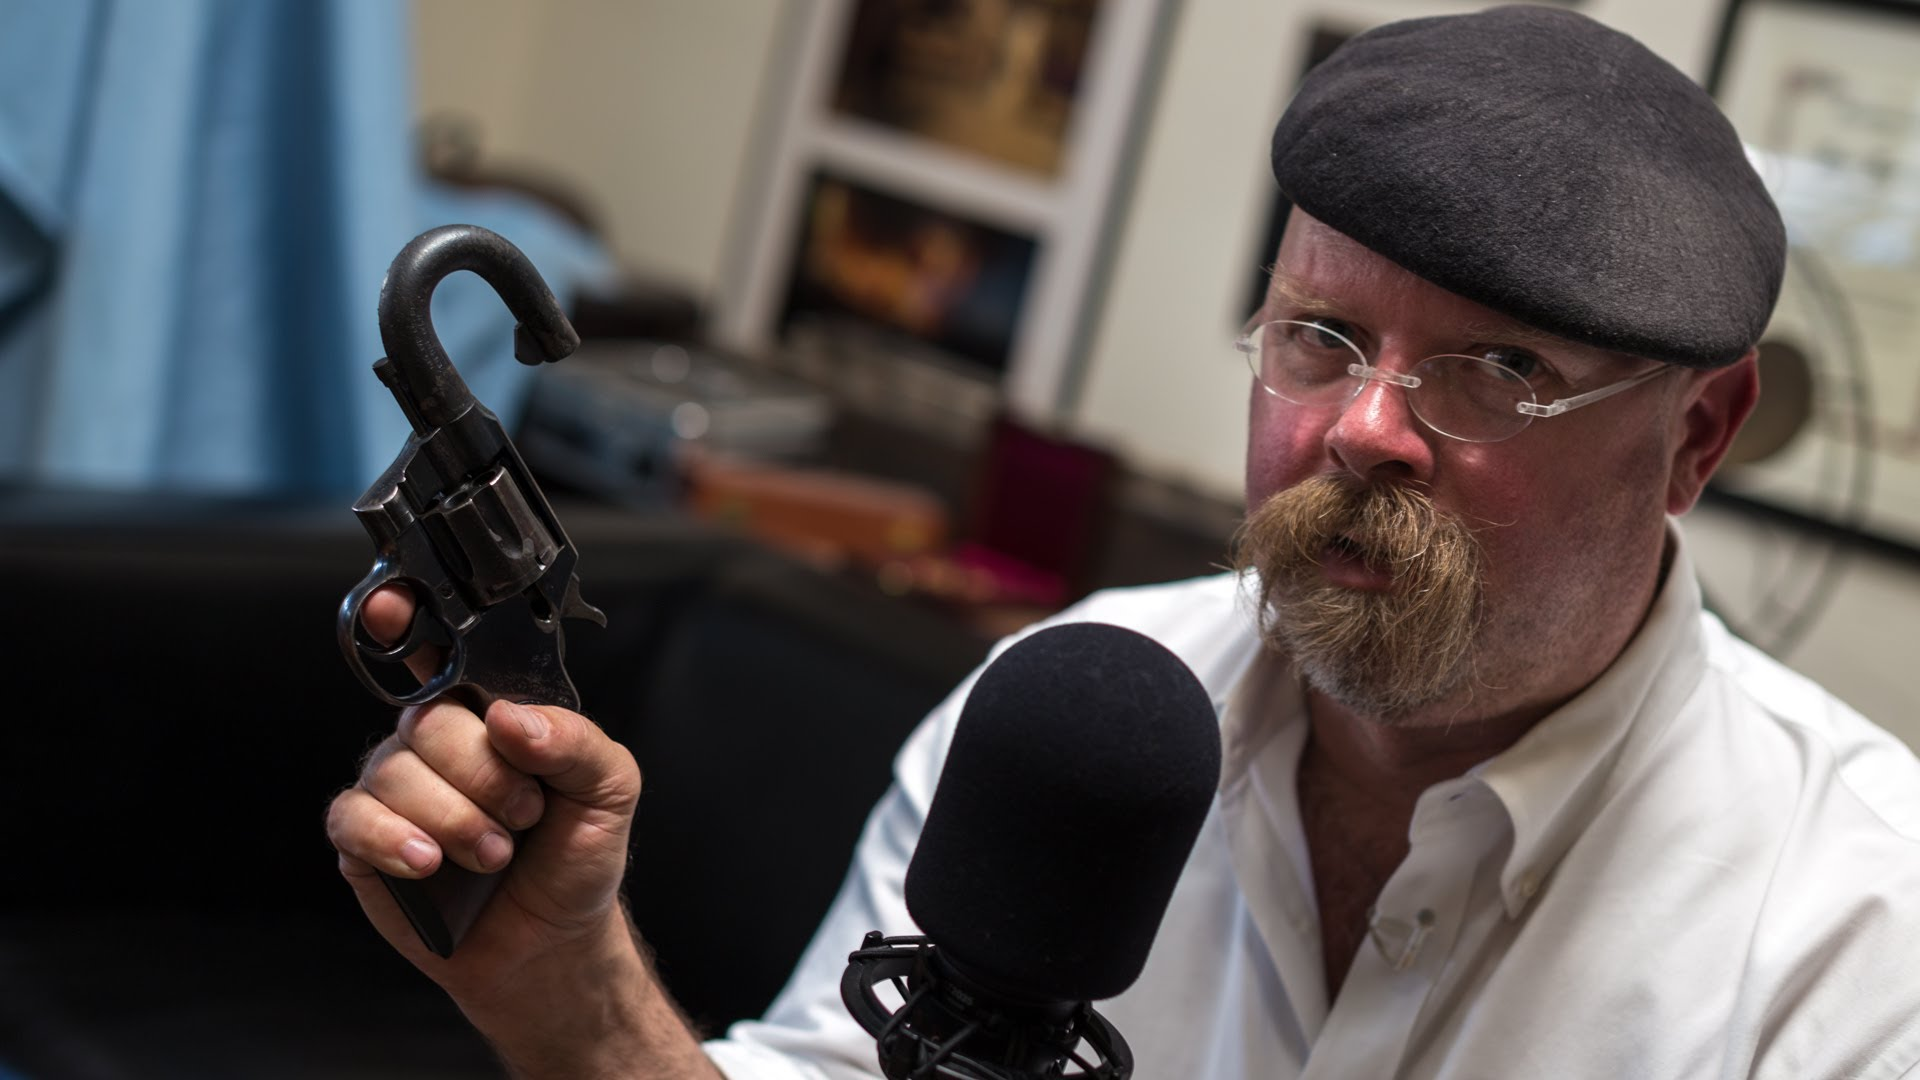 What Happened To Jamie Hyneman - What He's Doing Now in 2018